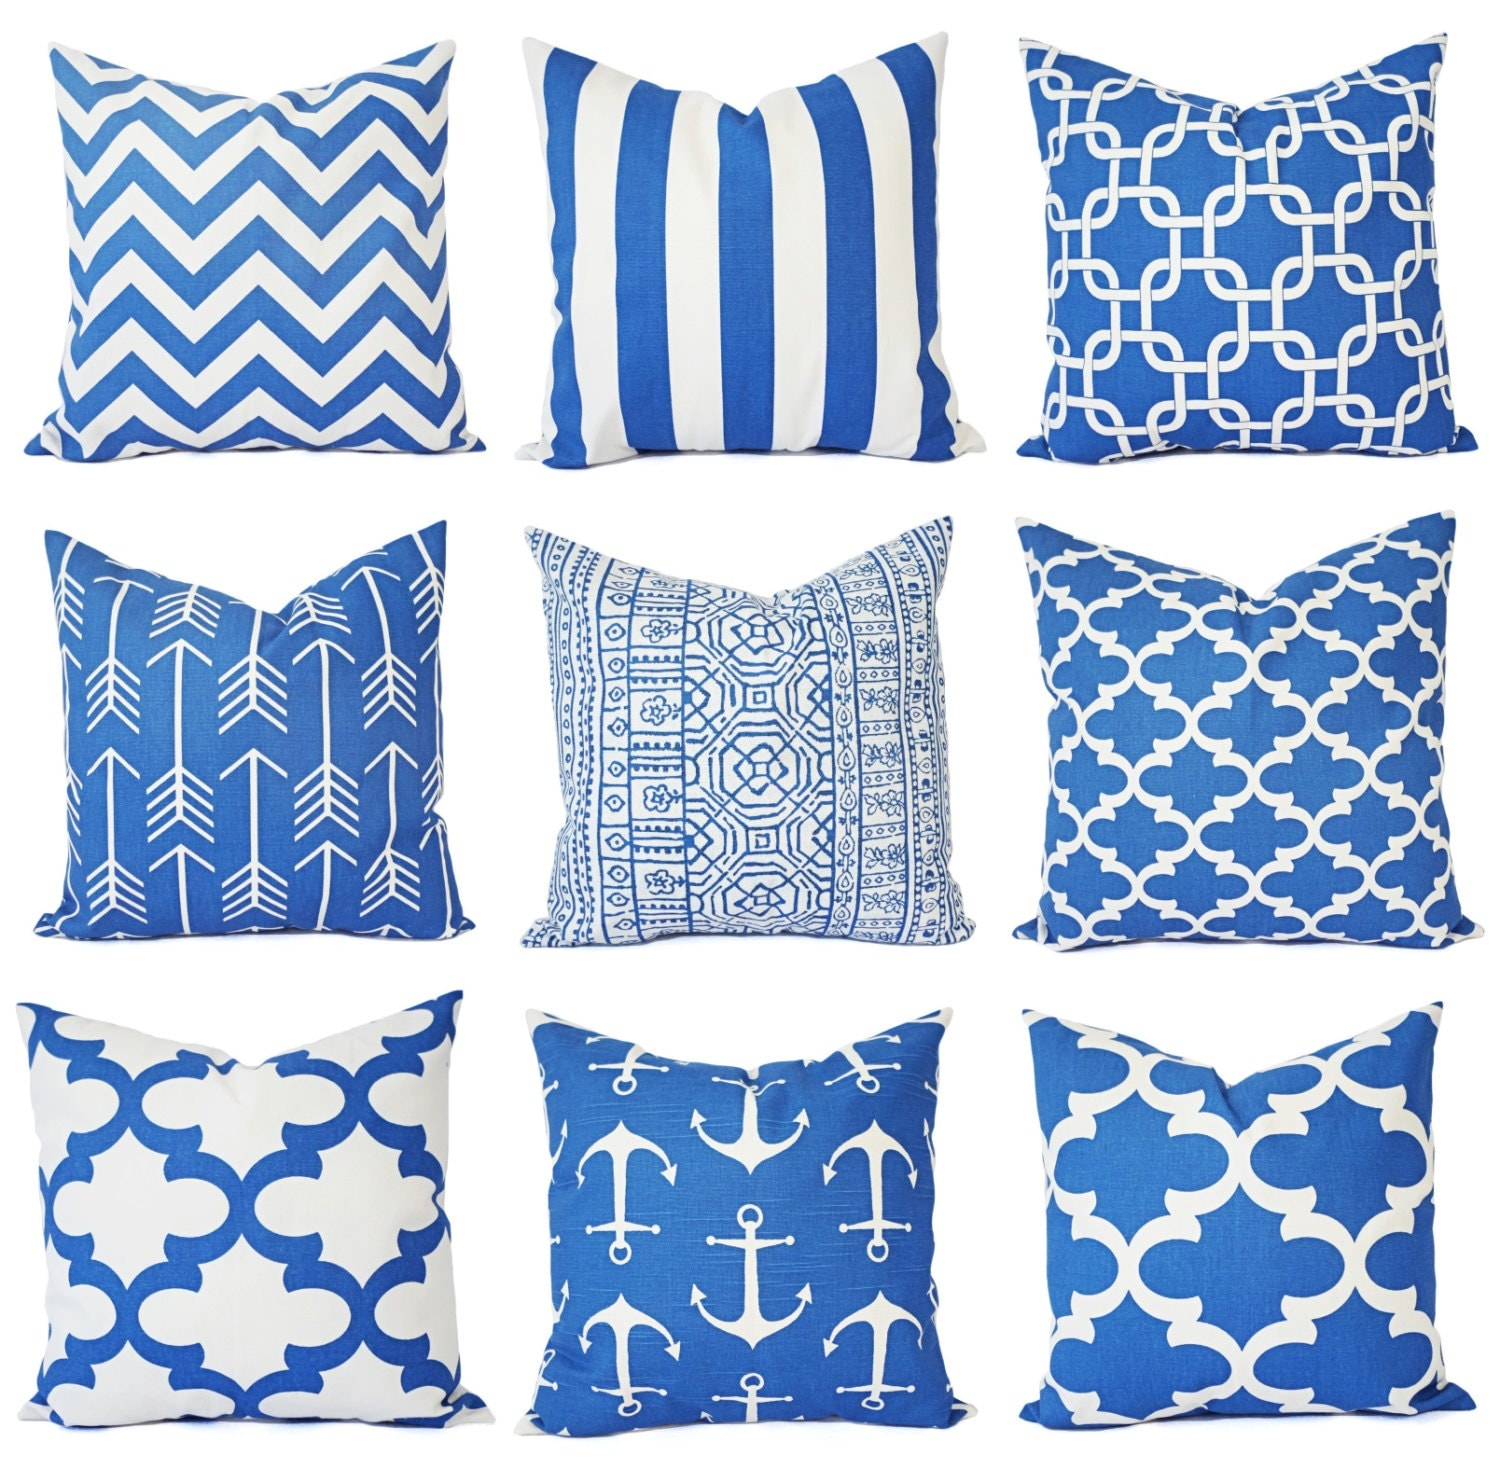 Throw Pillows Royal Blue : Royal Blue Pillow Covers Blue Throw Pillows Throw Pillow